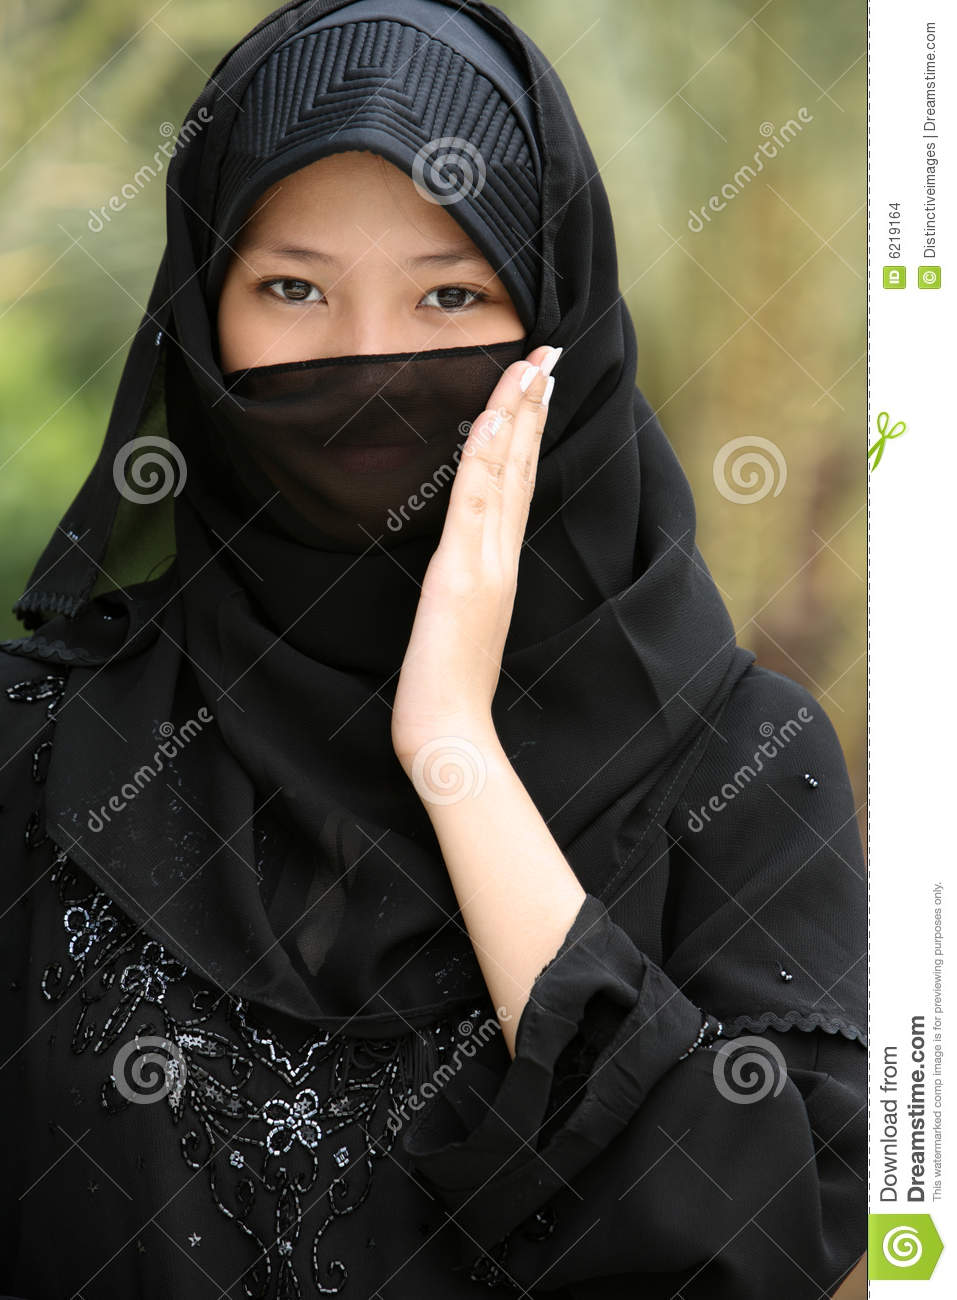 pawcatuck muslim girl personals Muslim dating is not always easy – that's why elitesingles is here to help meet marriage-minded single muslims and find your match here.